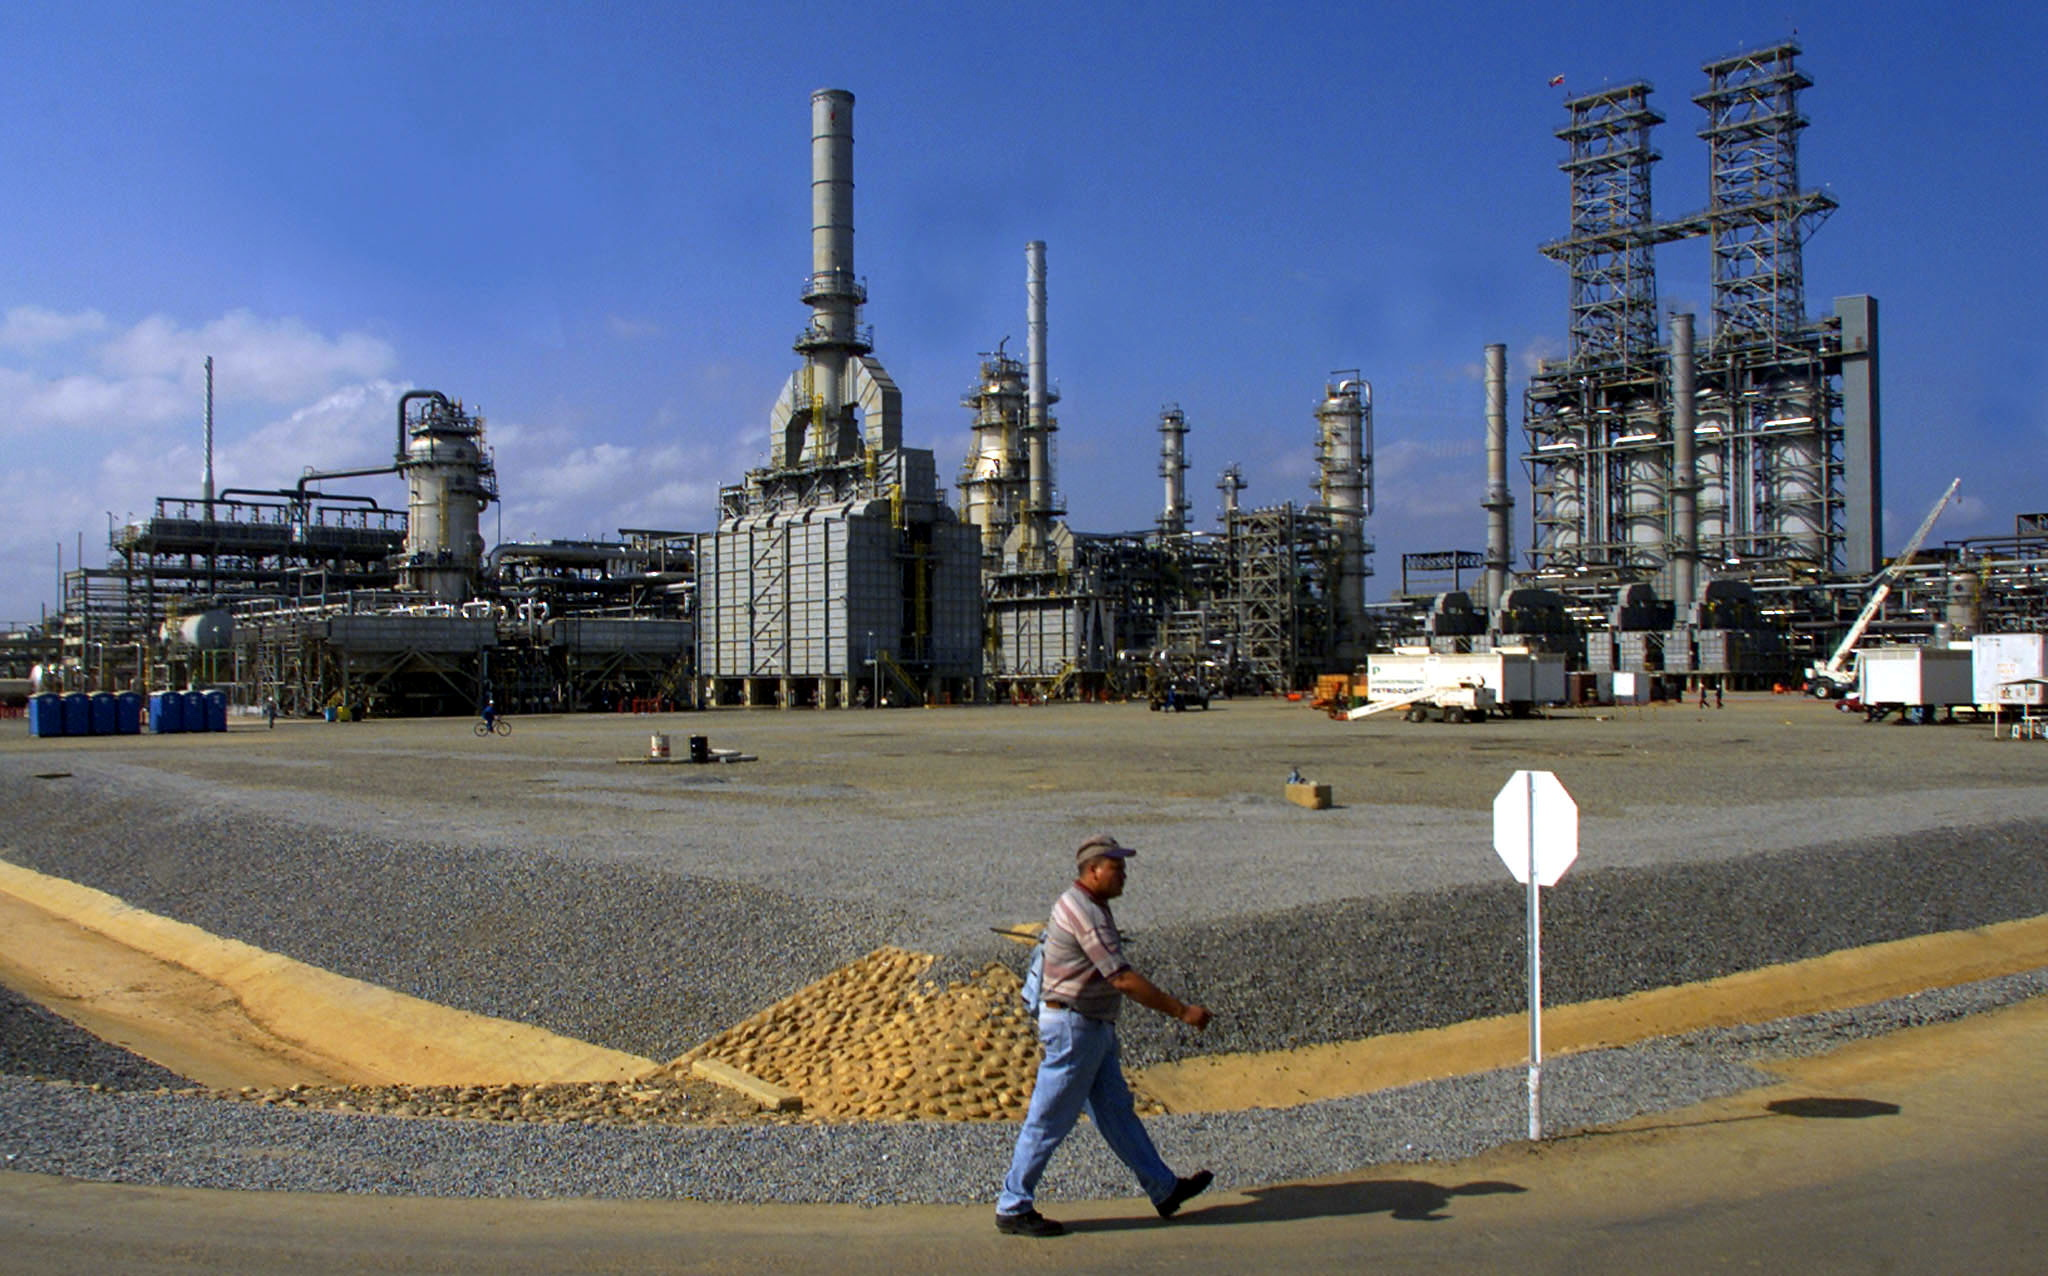 A worker walks past the Petrozuata Oil Refinery in the Orinoco oil belt in the Venezuelan eastern state of Anzoategui, February 13, 2001.U.S. oil company ConocoPhillips had sought up to $22 billion from PDVSA for the broken contracts and loss of future profits from the Hamaca and Petrozuata oil projects.